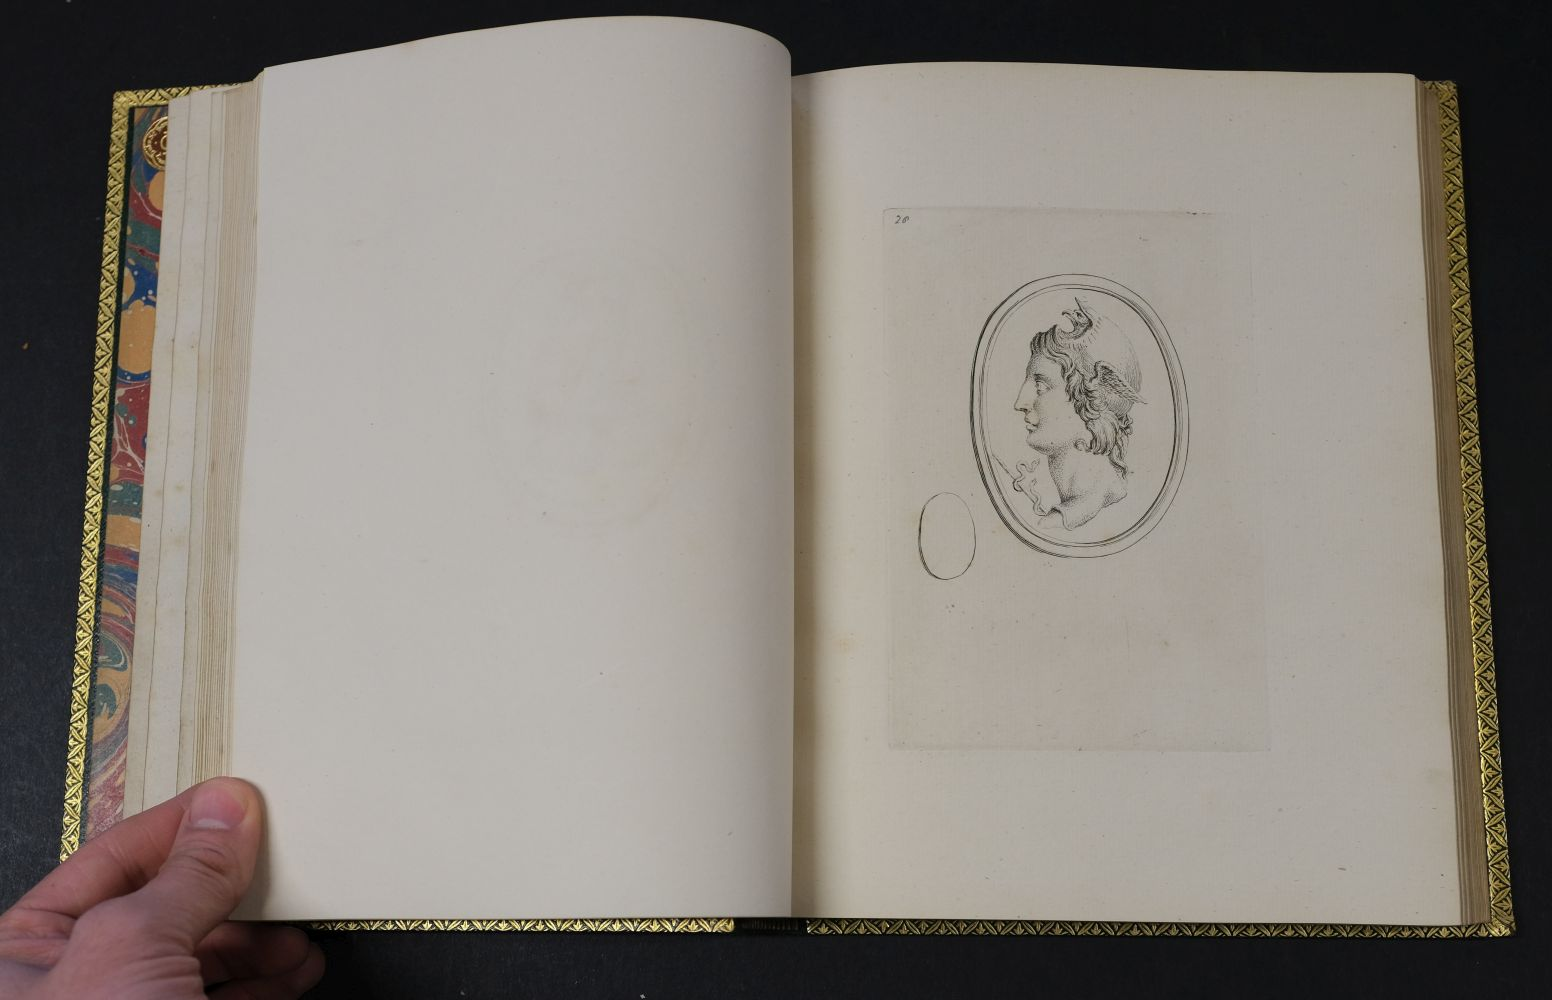 Devonshire Gems. Duke of Devonshire's Collection of Gems, privately printed, circa 1790 - Image 13 of 16